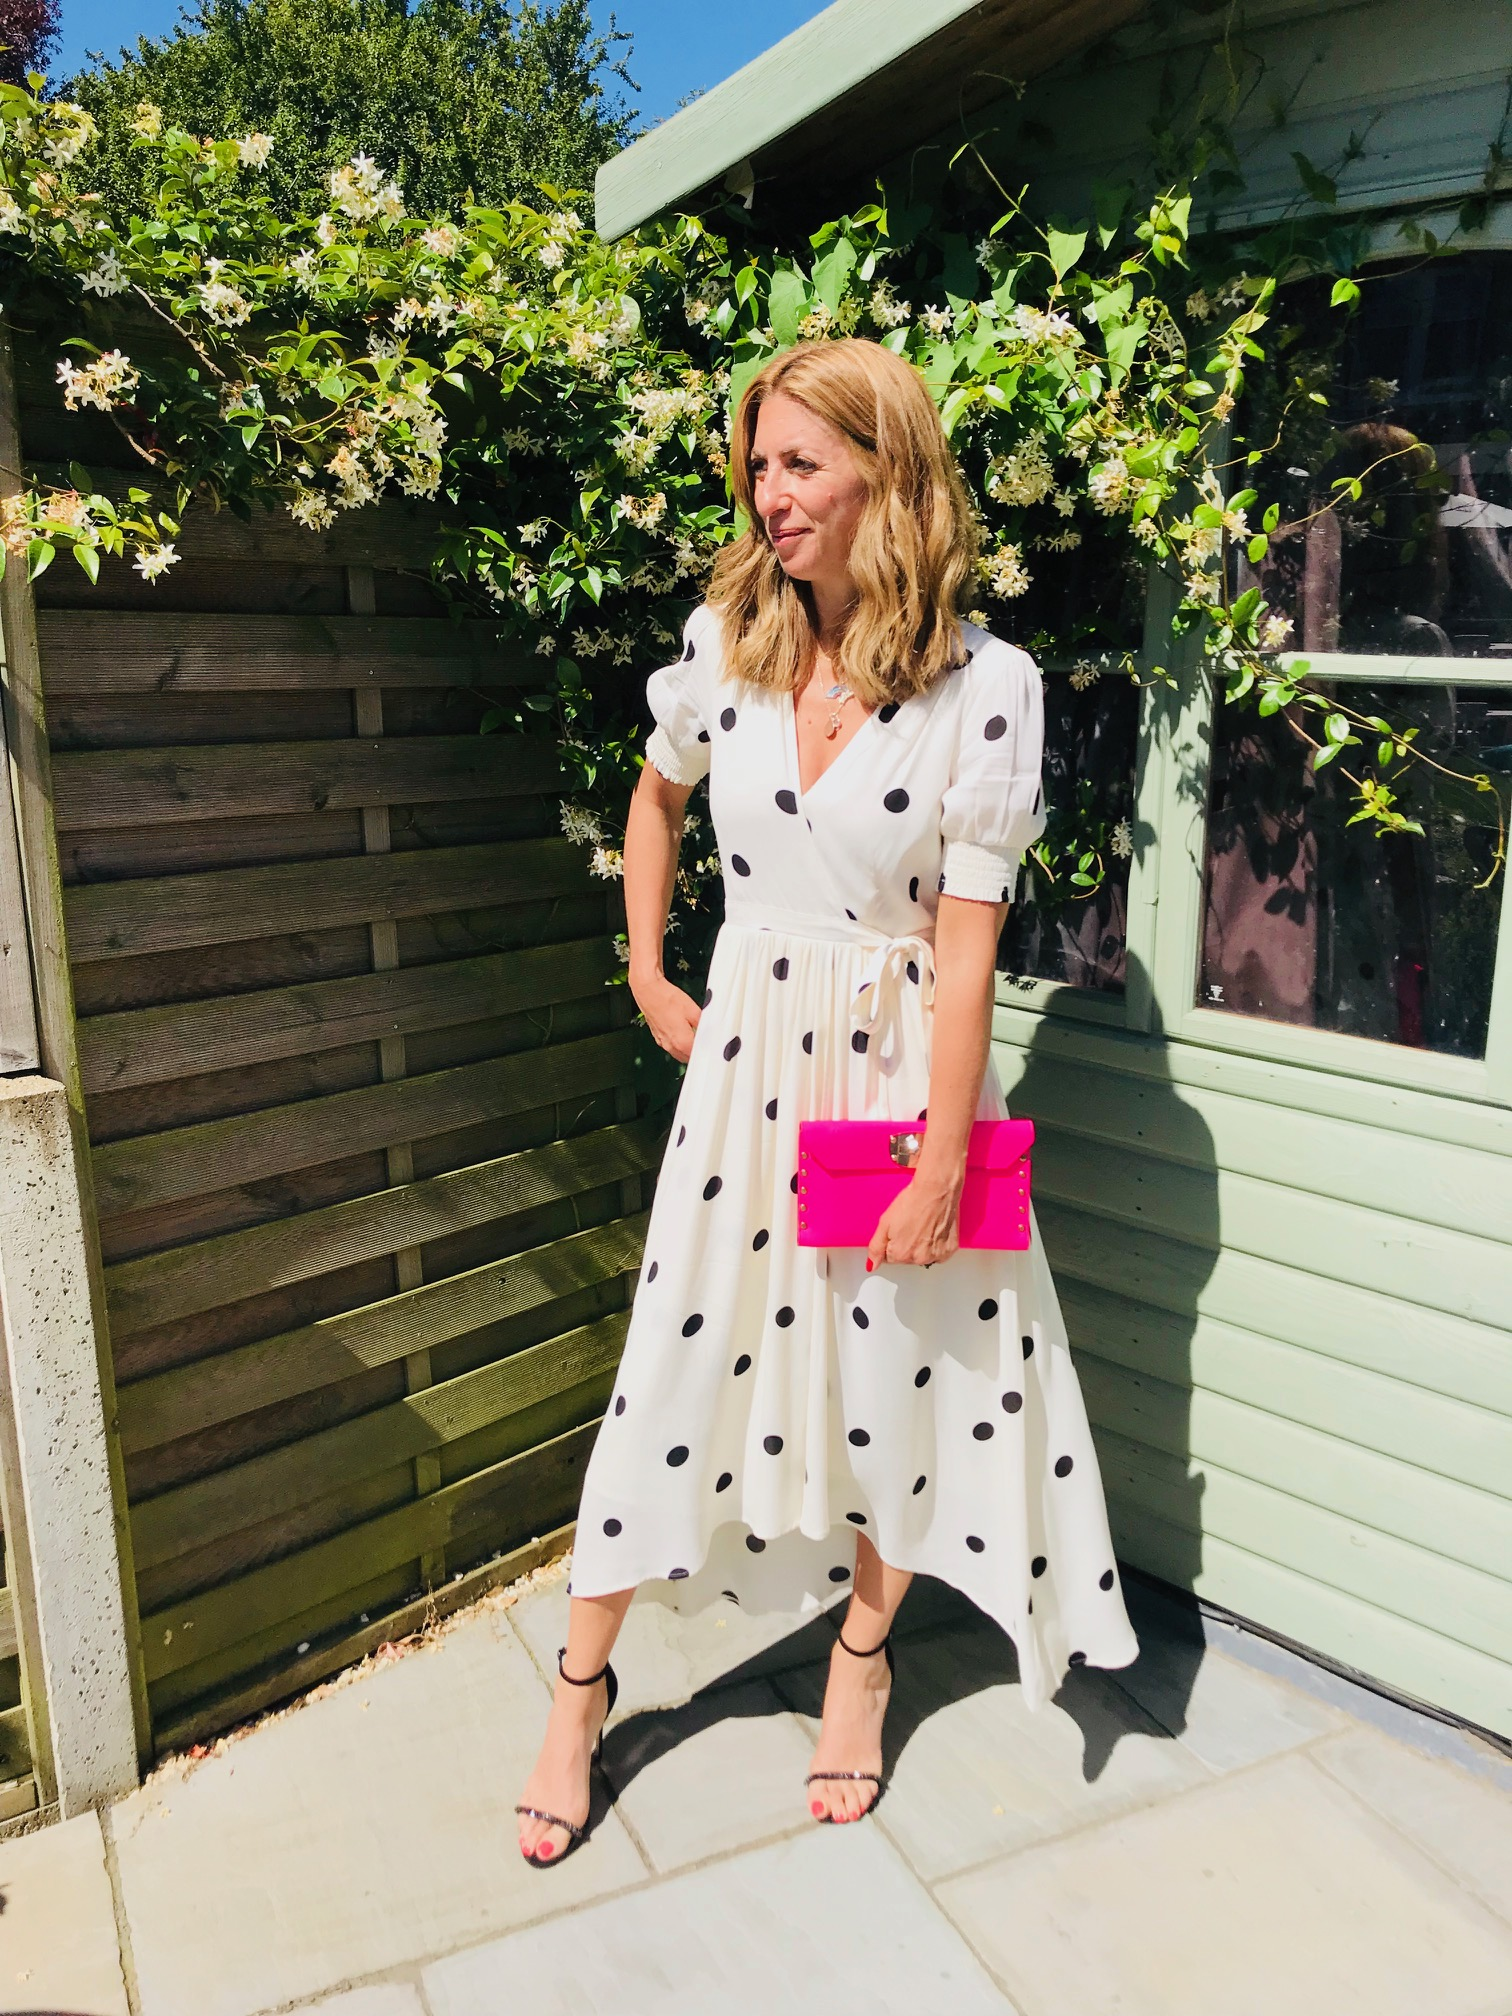 Dress - From Anthropologie£148 (polka dot only in store)100% viscoseFully linedCute puff sleevePerfect for a wedding